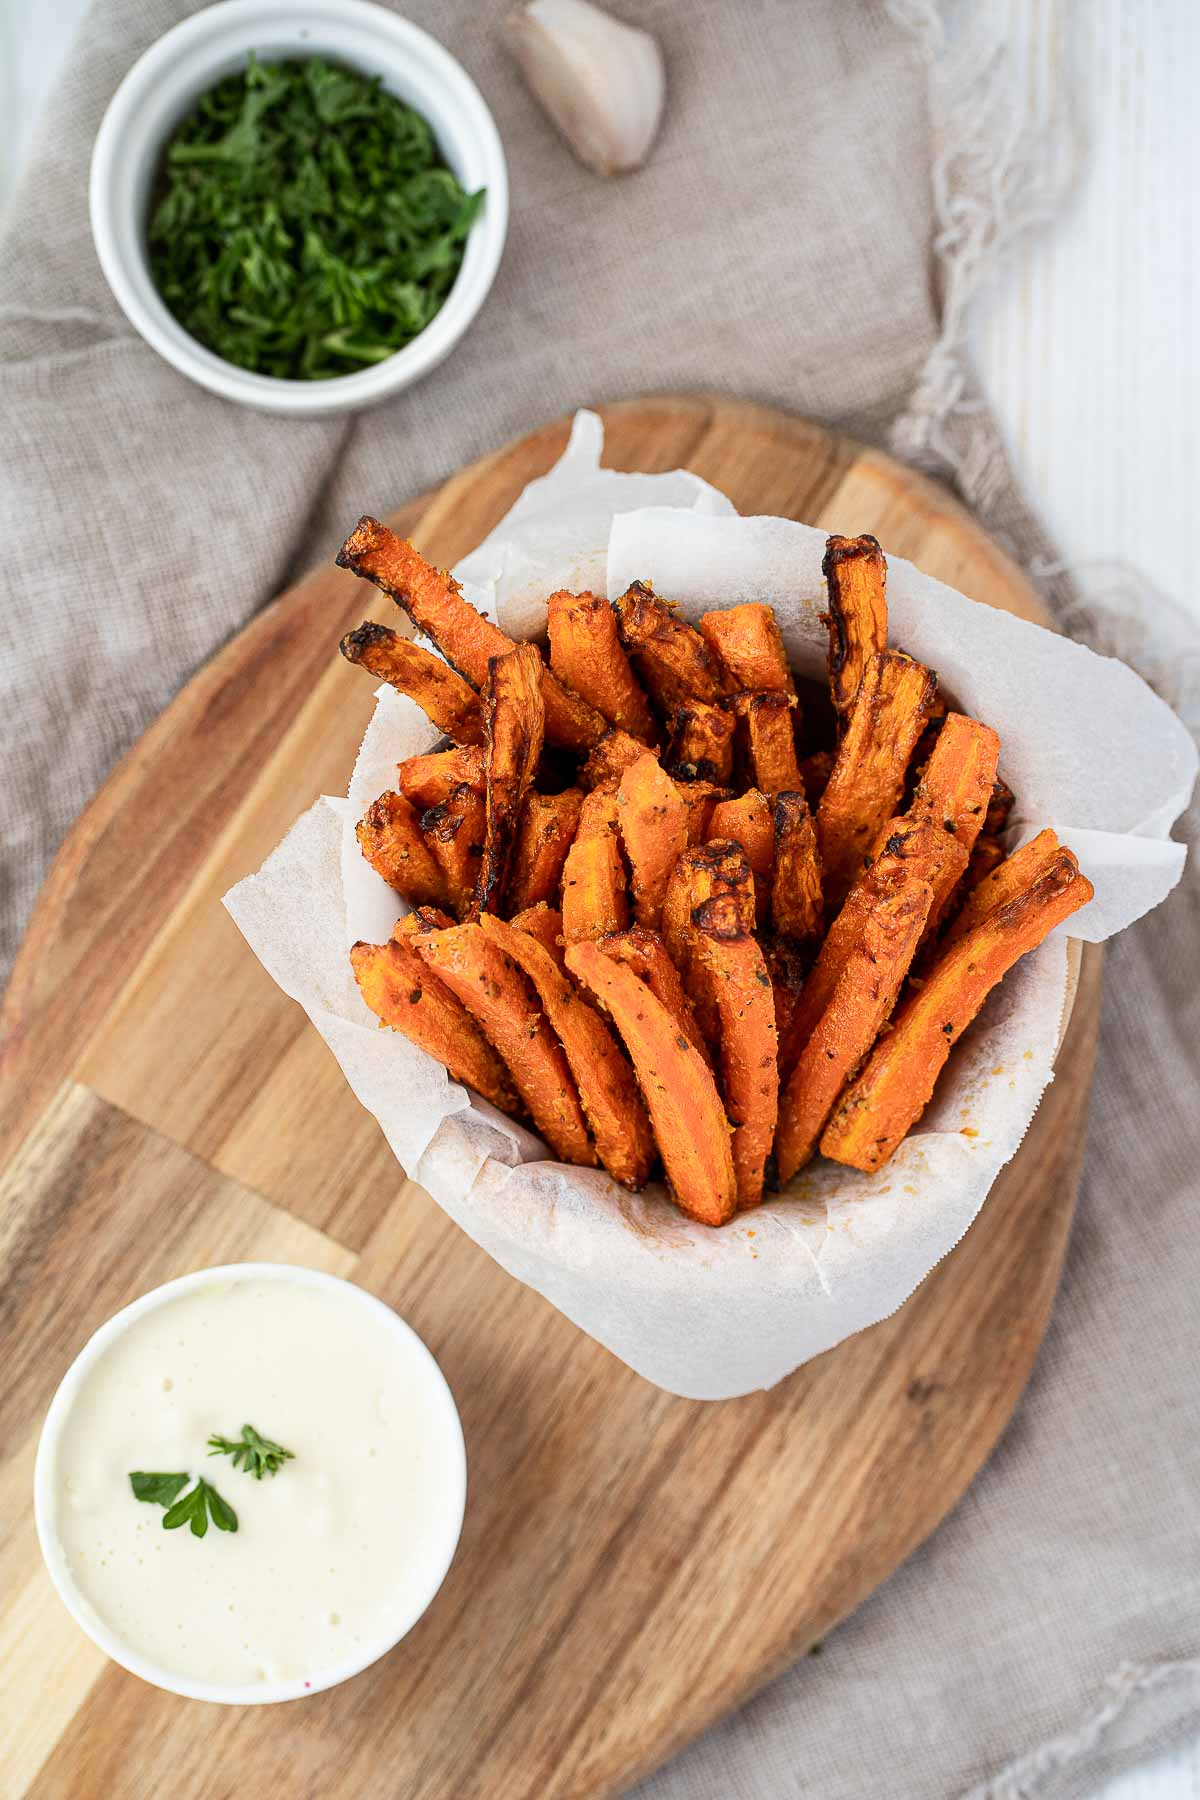 Air fryed carrot fries with aioli dip.